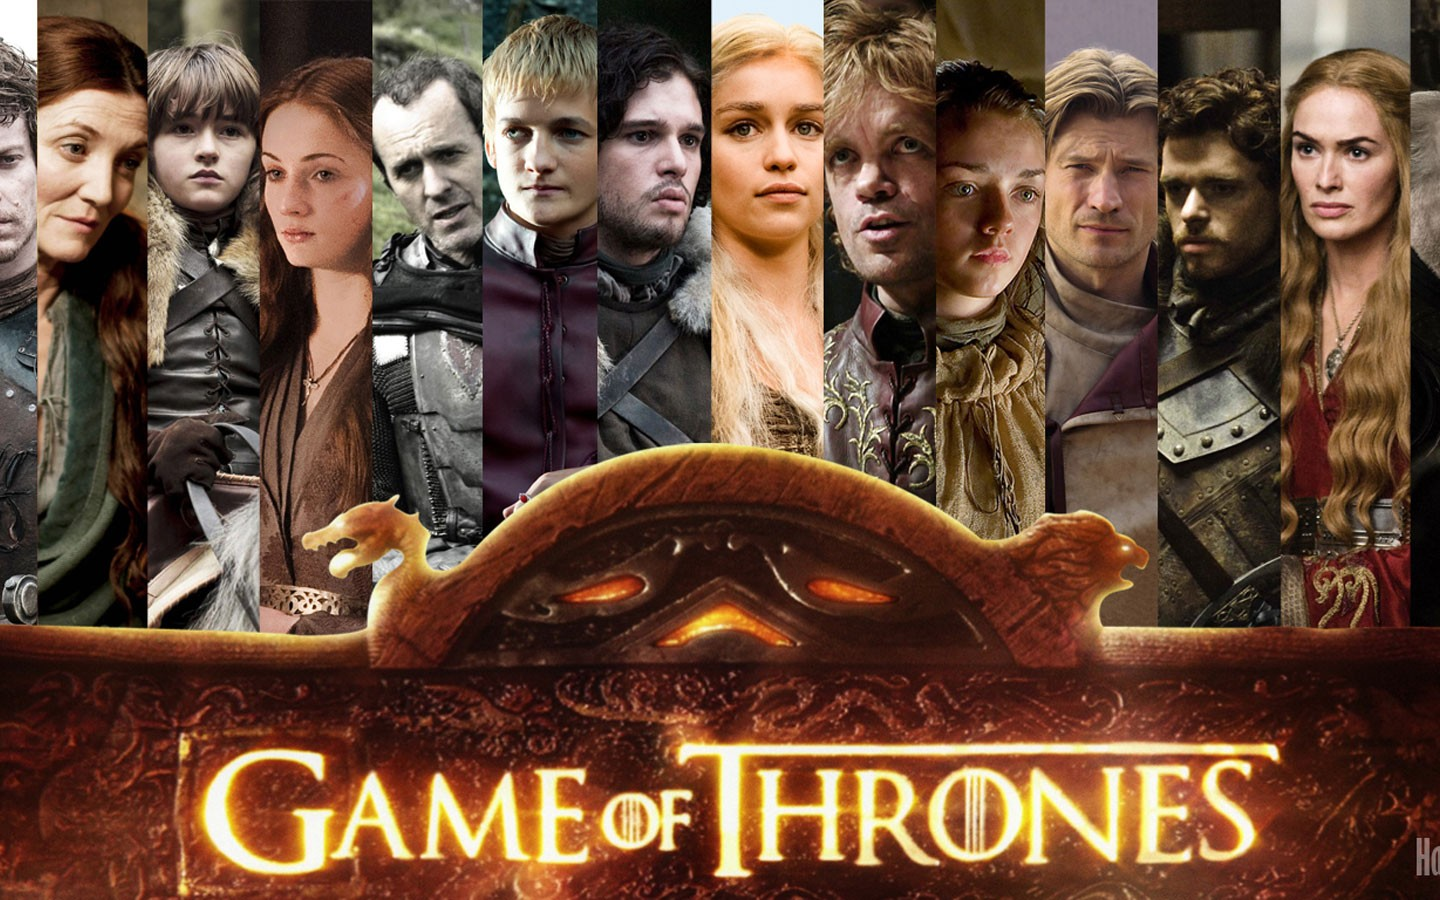 Game Of Thrones Season 5 Cast Wallpaper